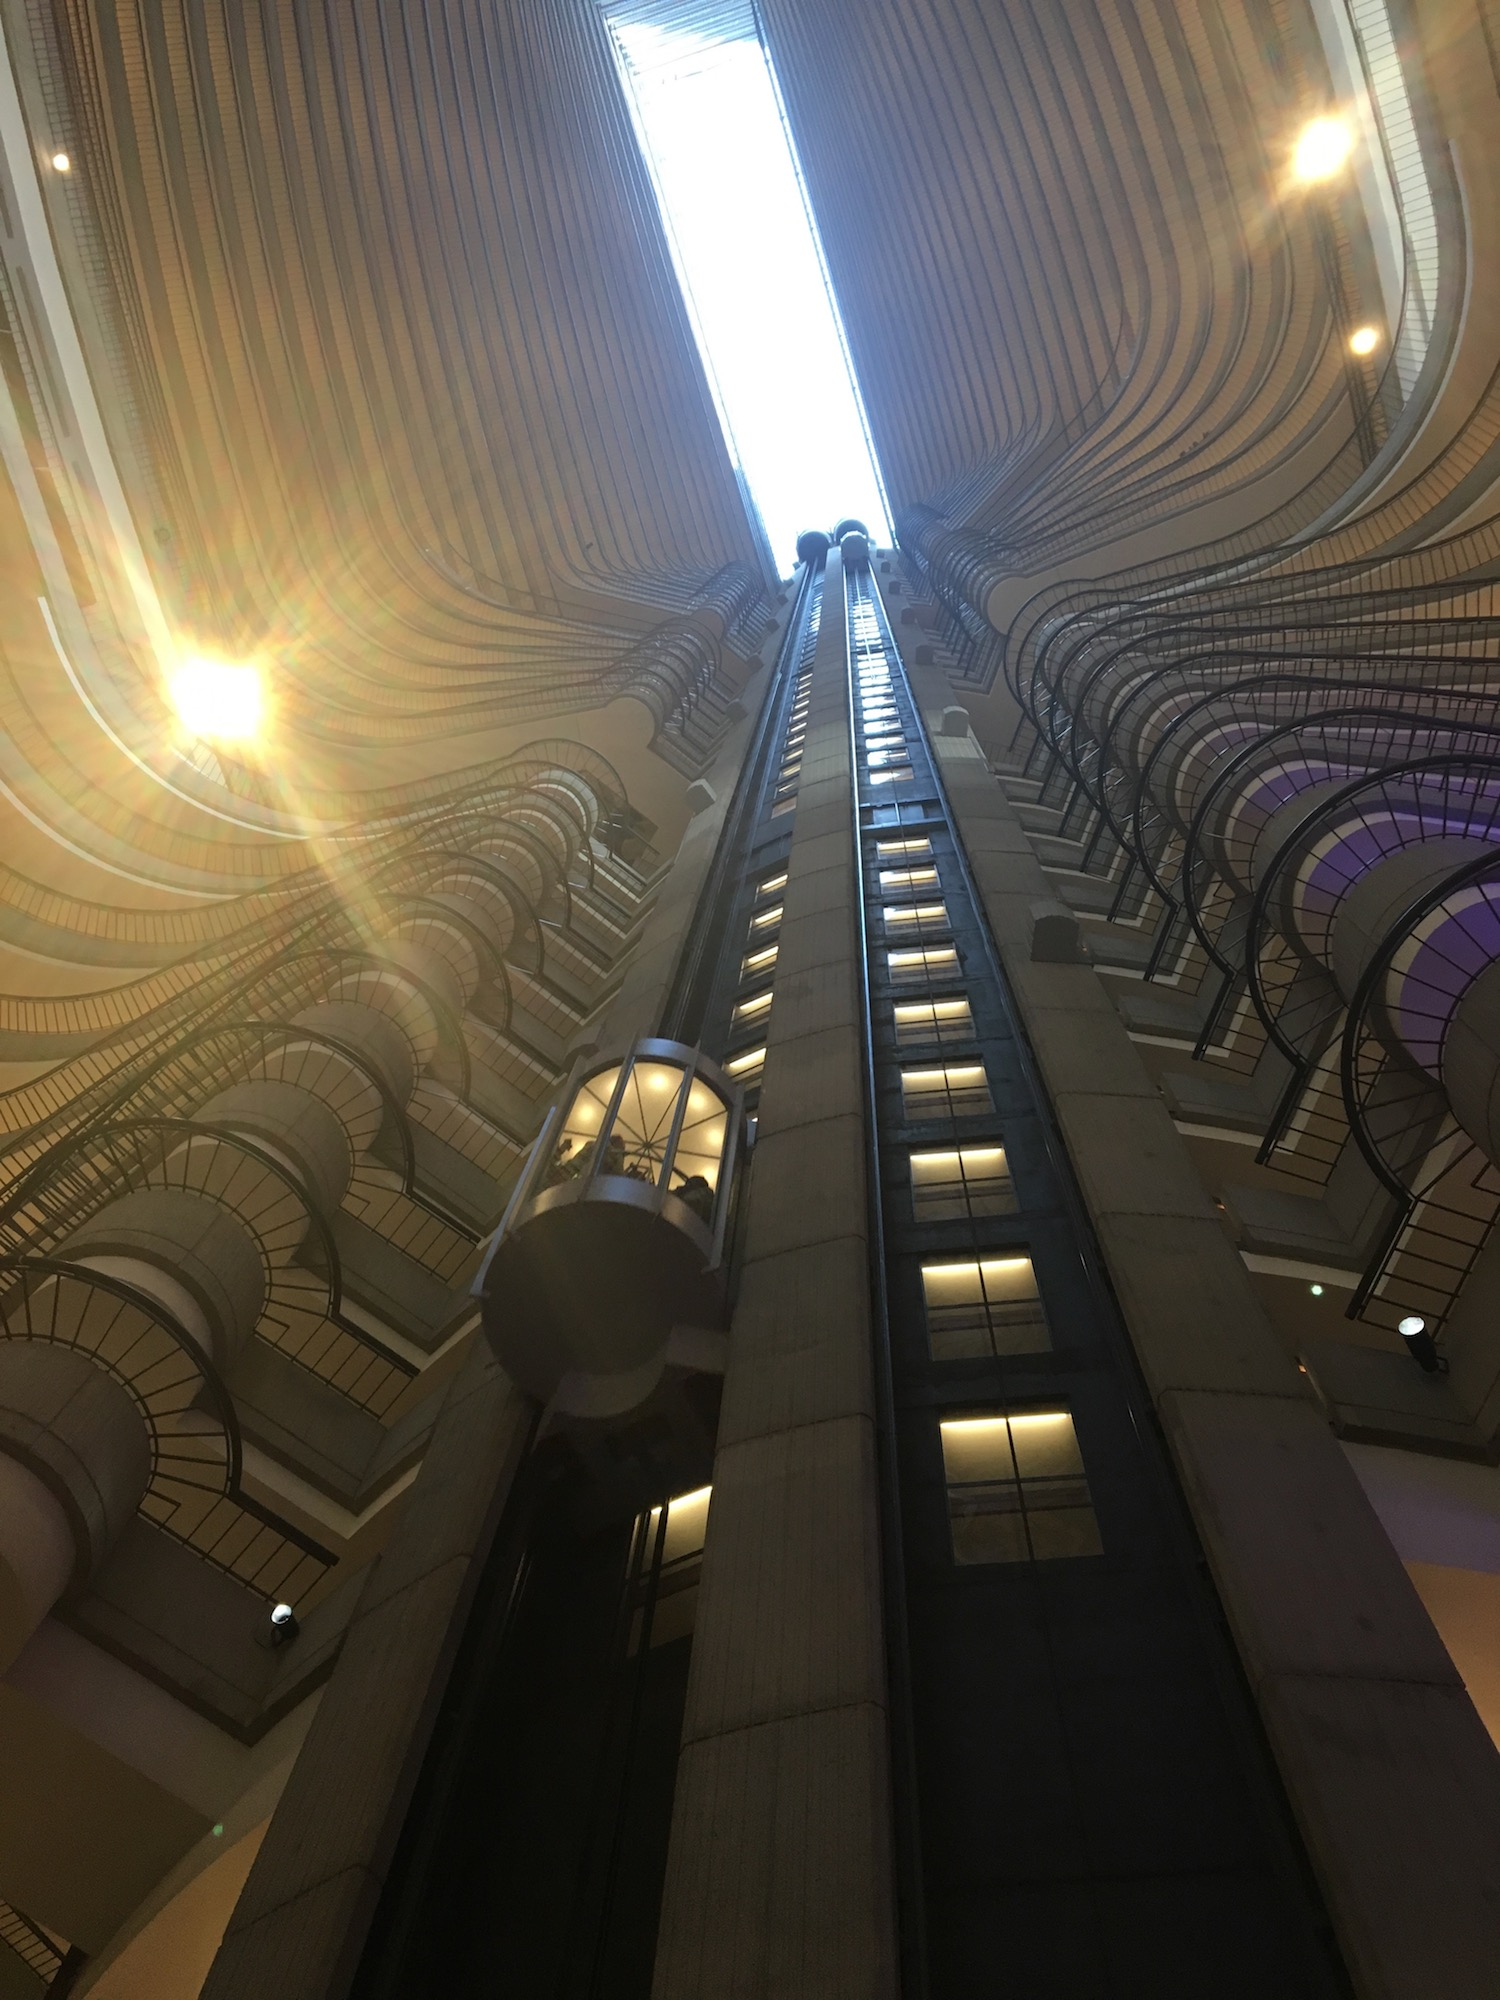 Inside the futuristic Atlanta Marriott Marquis Hotel